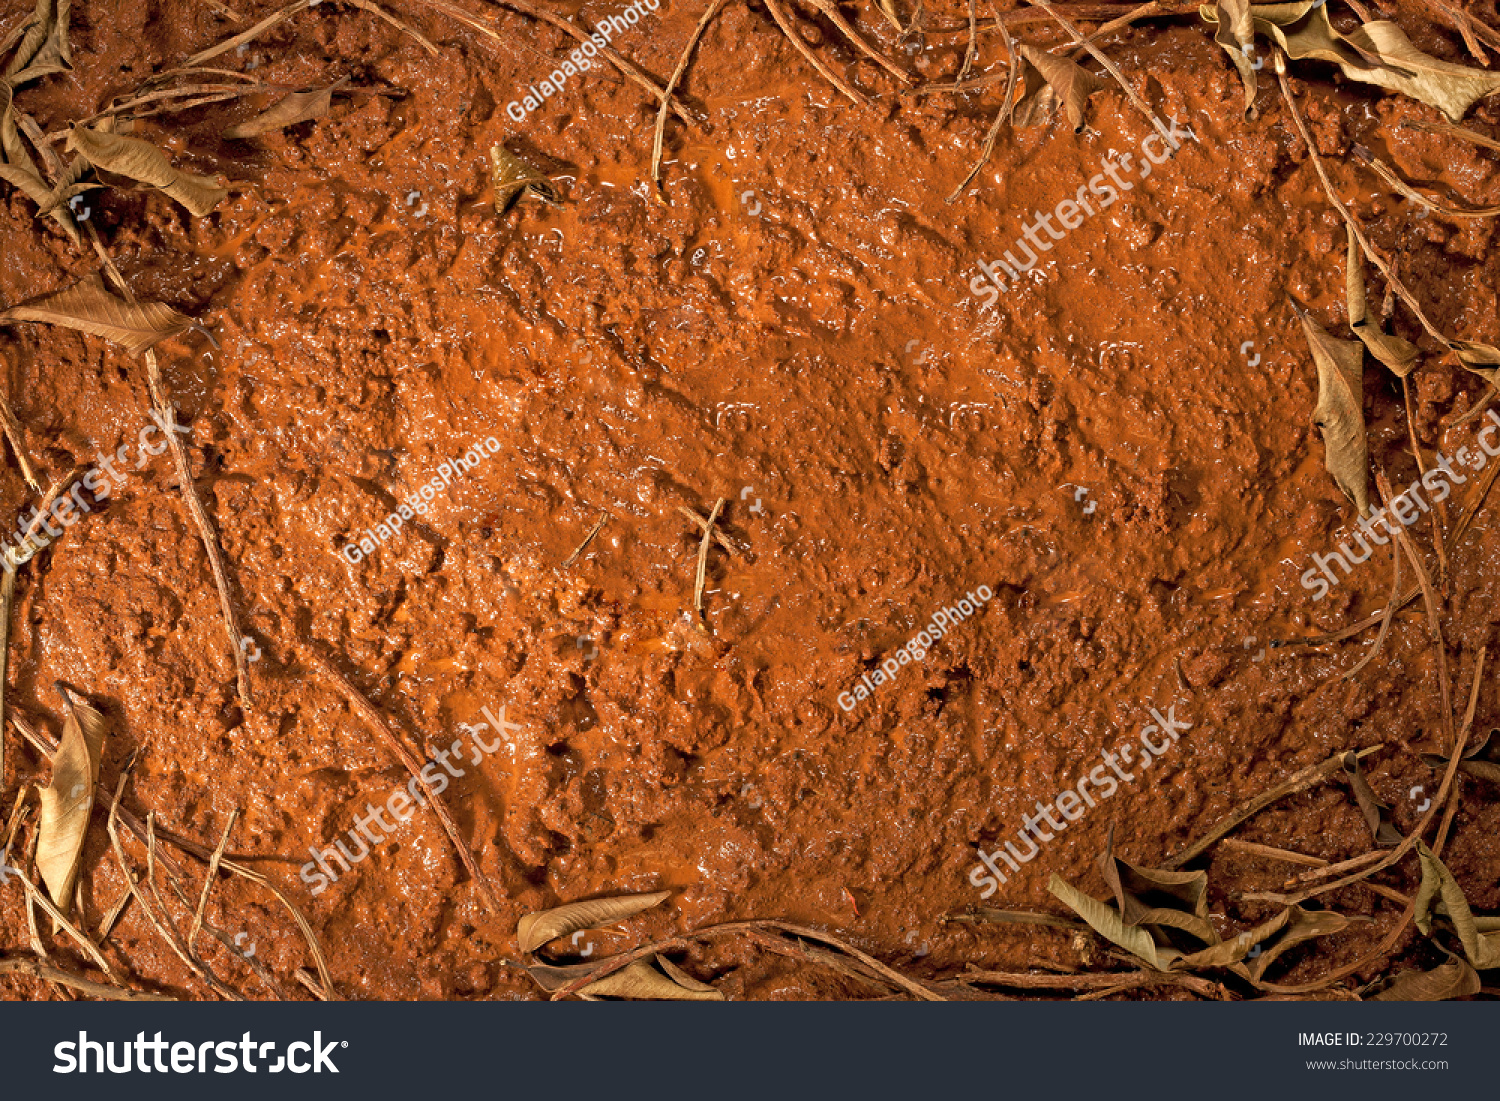 Red mud surface leaves top view stock photo 229700272 shutterstock red mud surface with leaves top view of rough road texture background dramatic lighting sciox Images